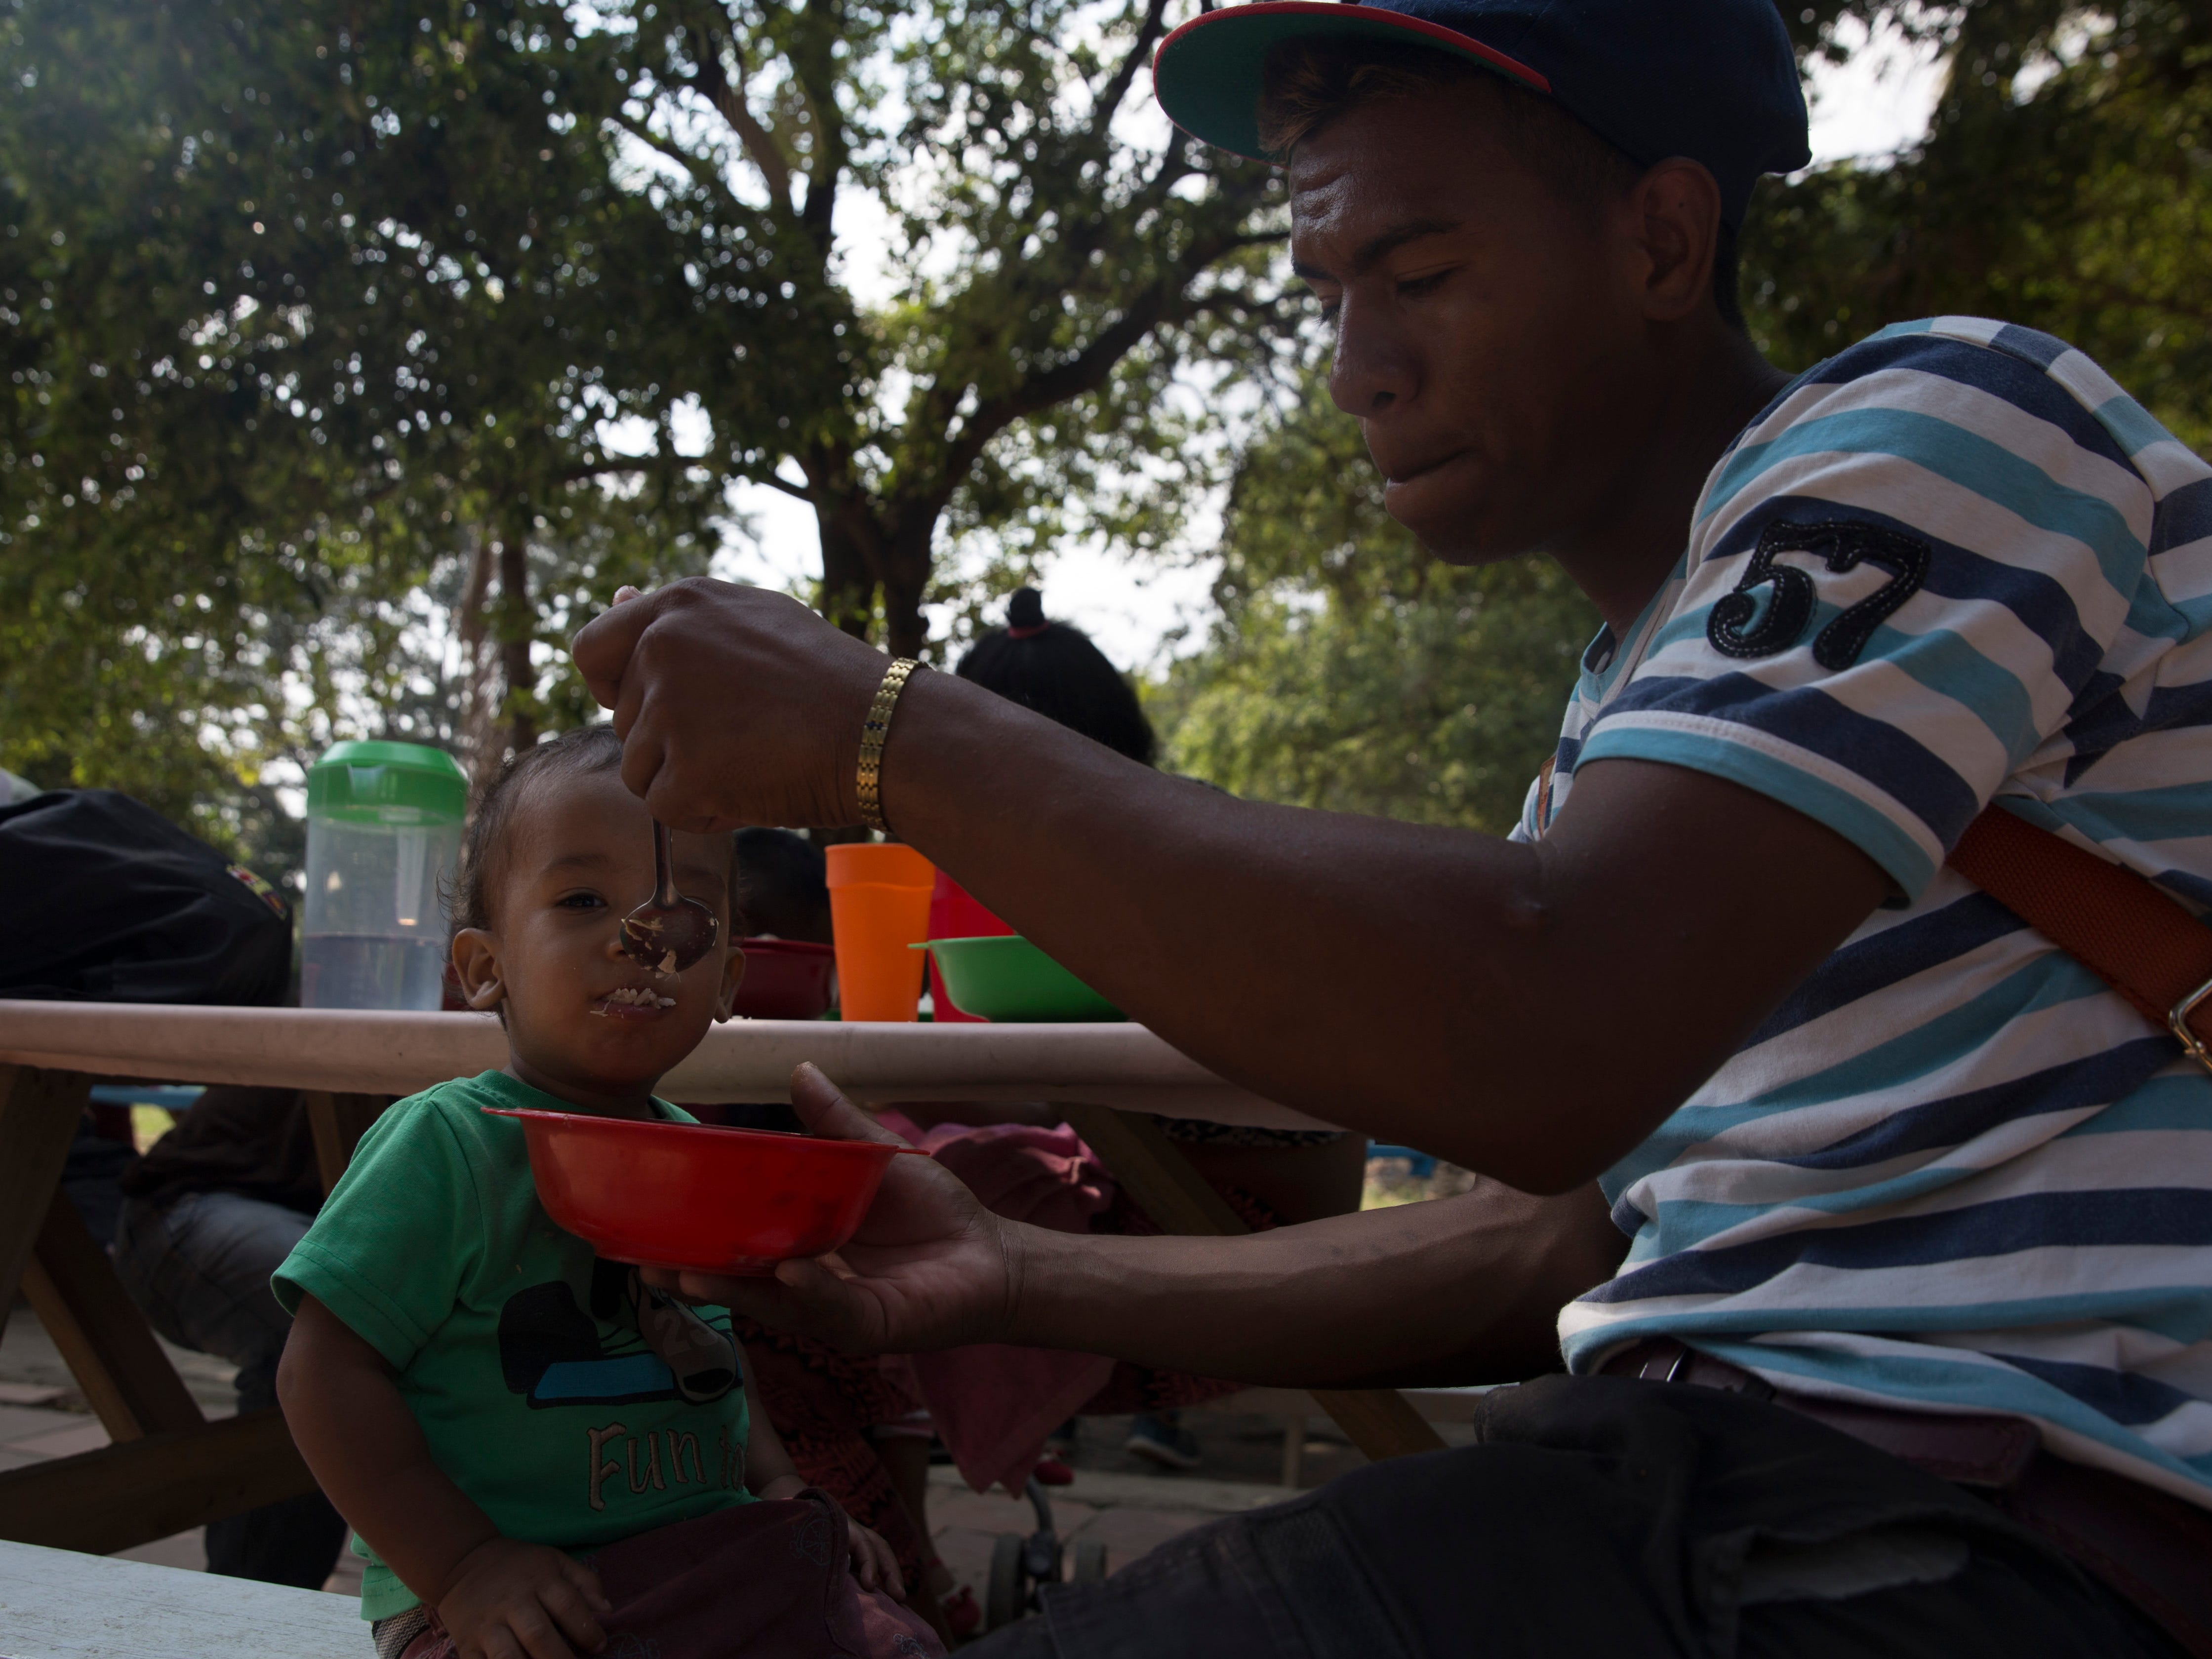 Venezuelan migrant Ricardo Toreabo feeds his two-year-old son at a soup kitchen in Cœcuta, Colombia on Feb 6, 2019. The family has been sleeping on the streets since they arrived in Colombia days before.